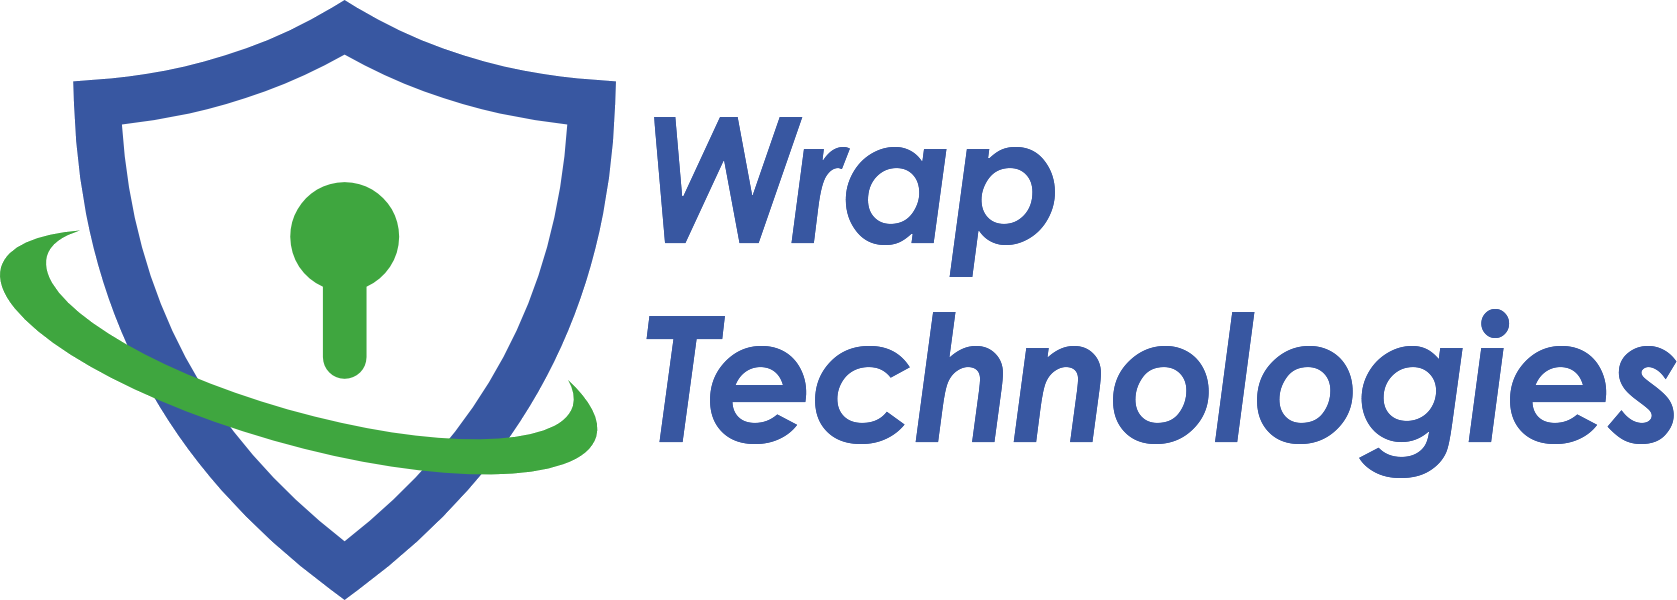 Wrap Technologies, Inc.